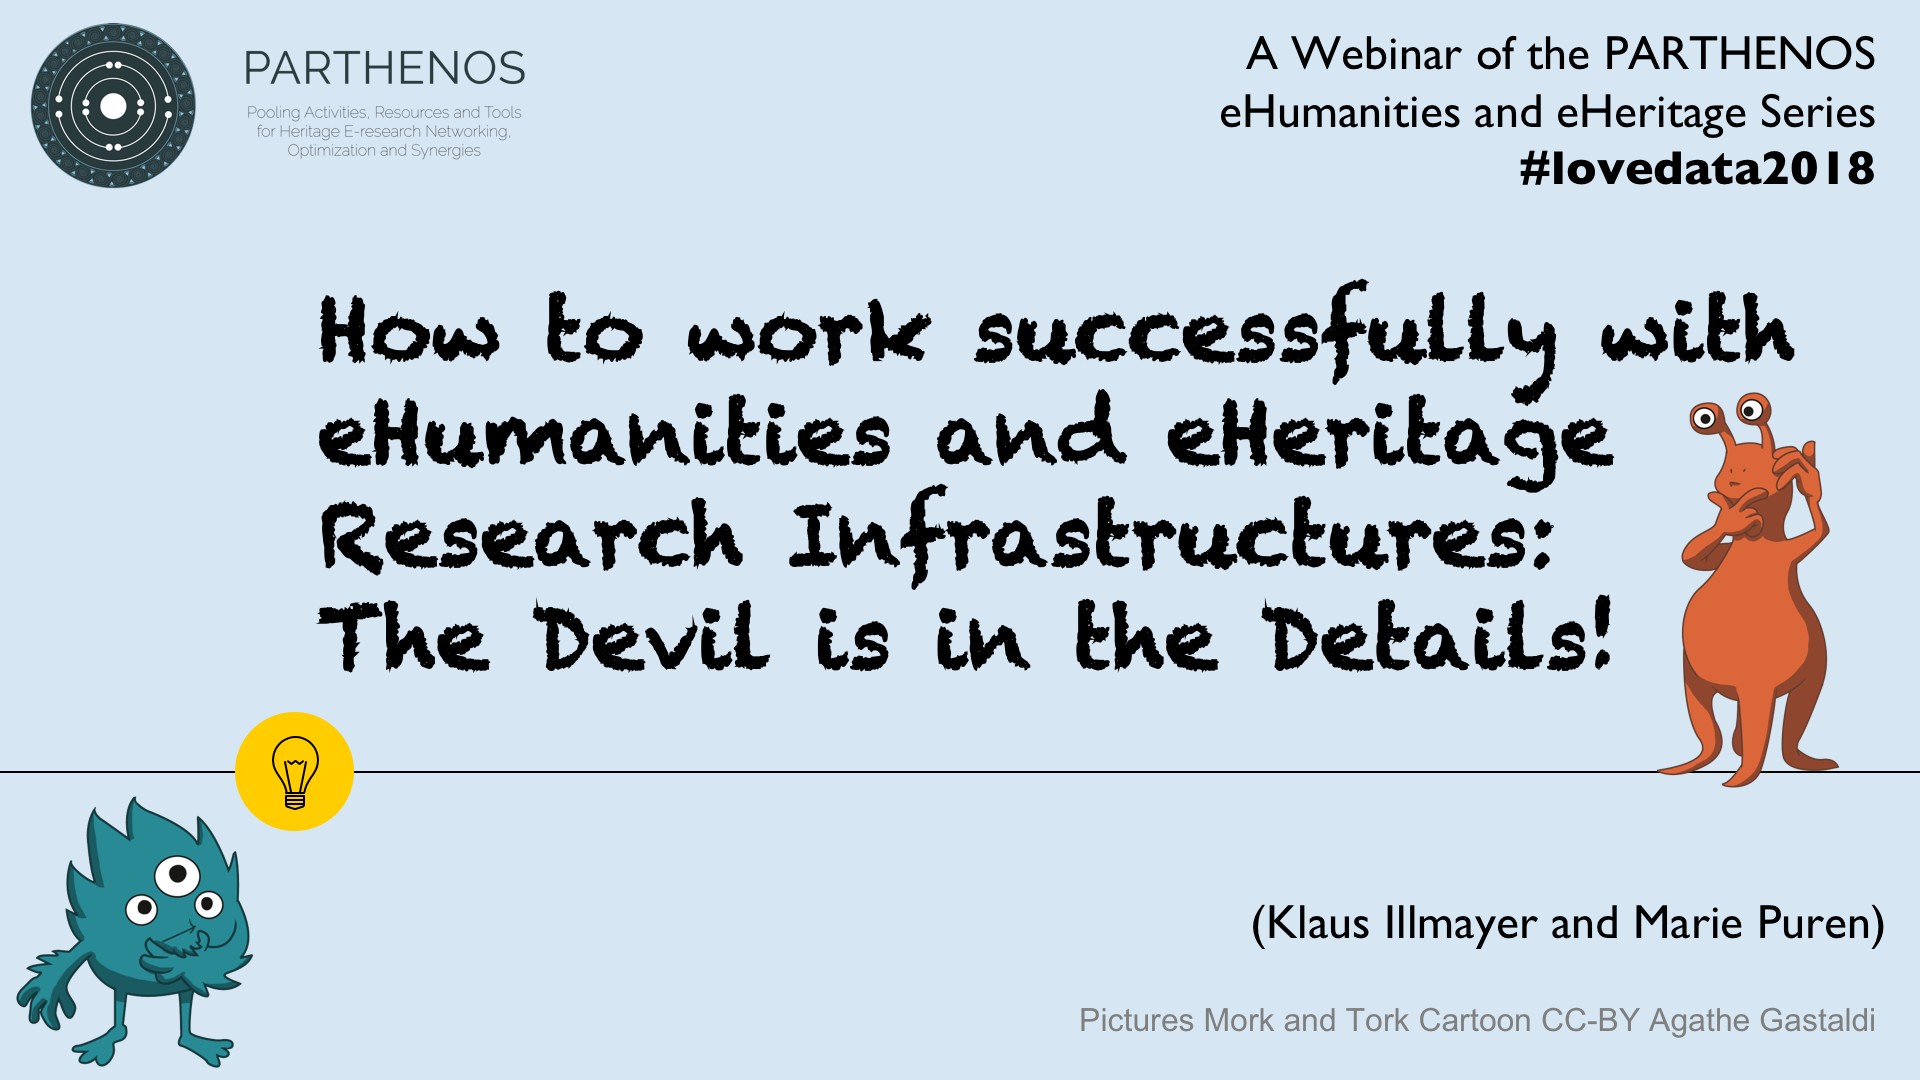 Webinar Parthenos - Puren and Illmayer